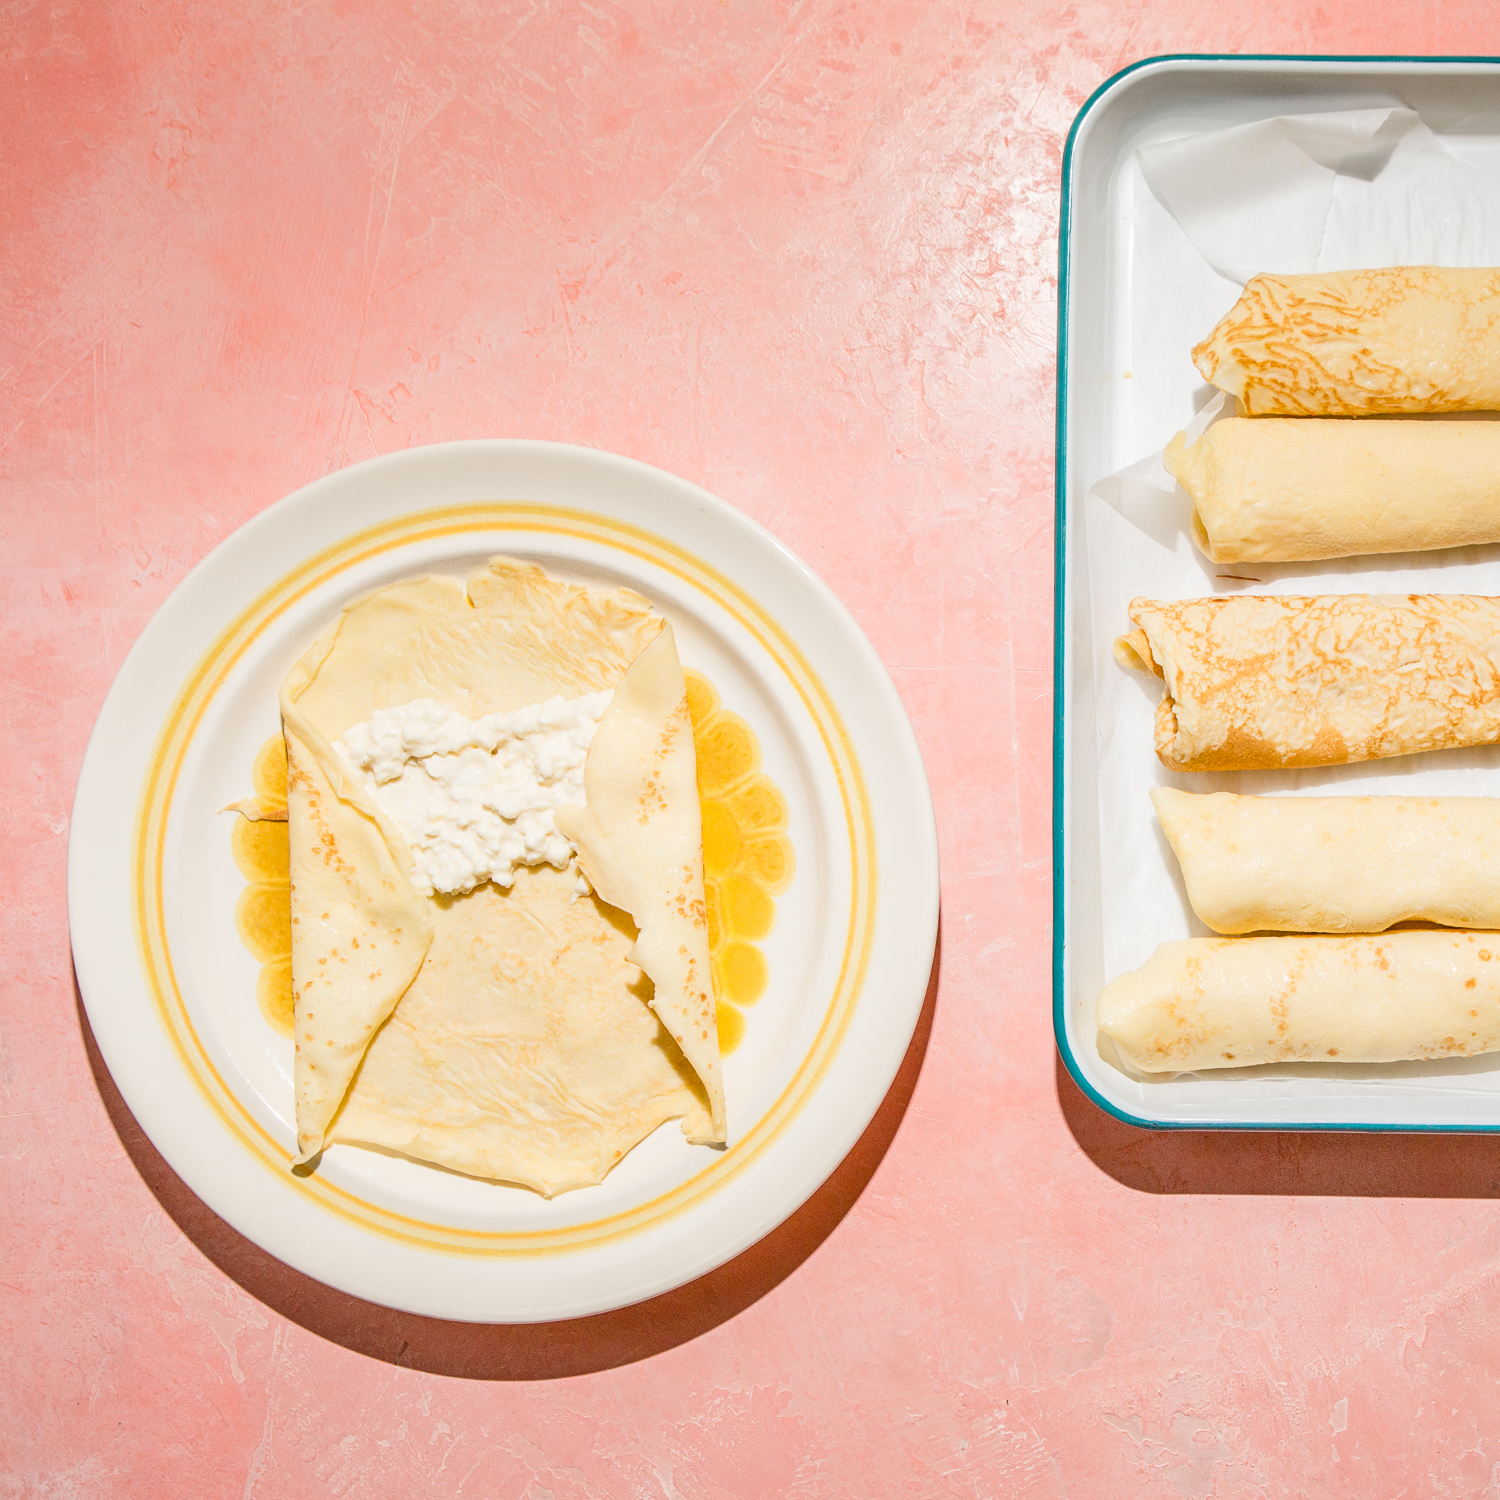 Blintz with Cream Cheese and Farmers Cheese